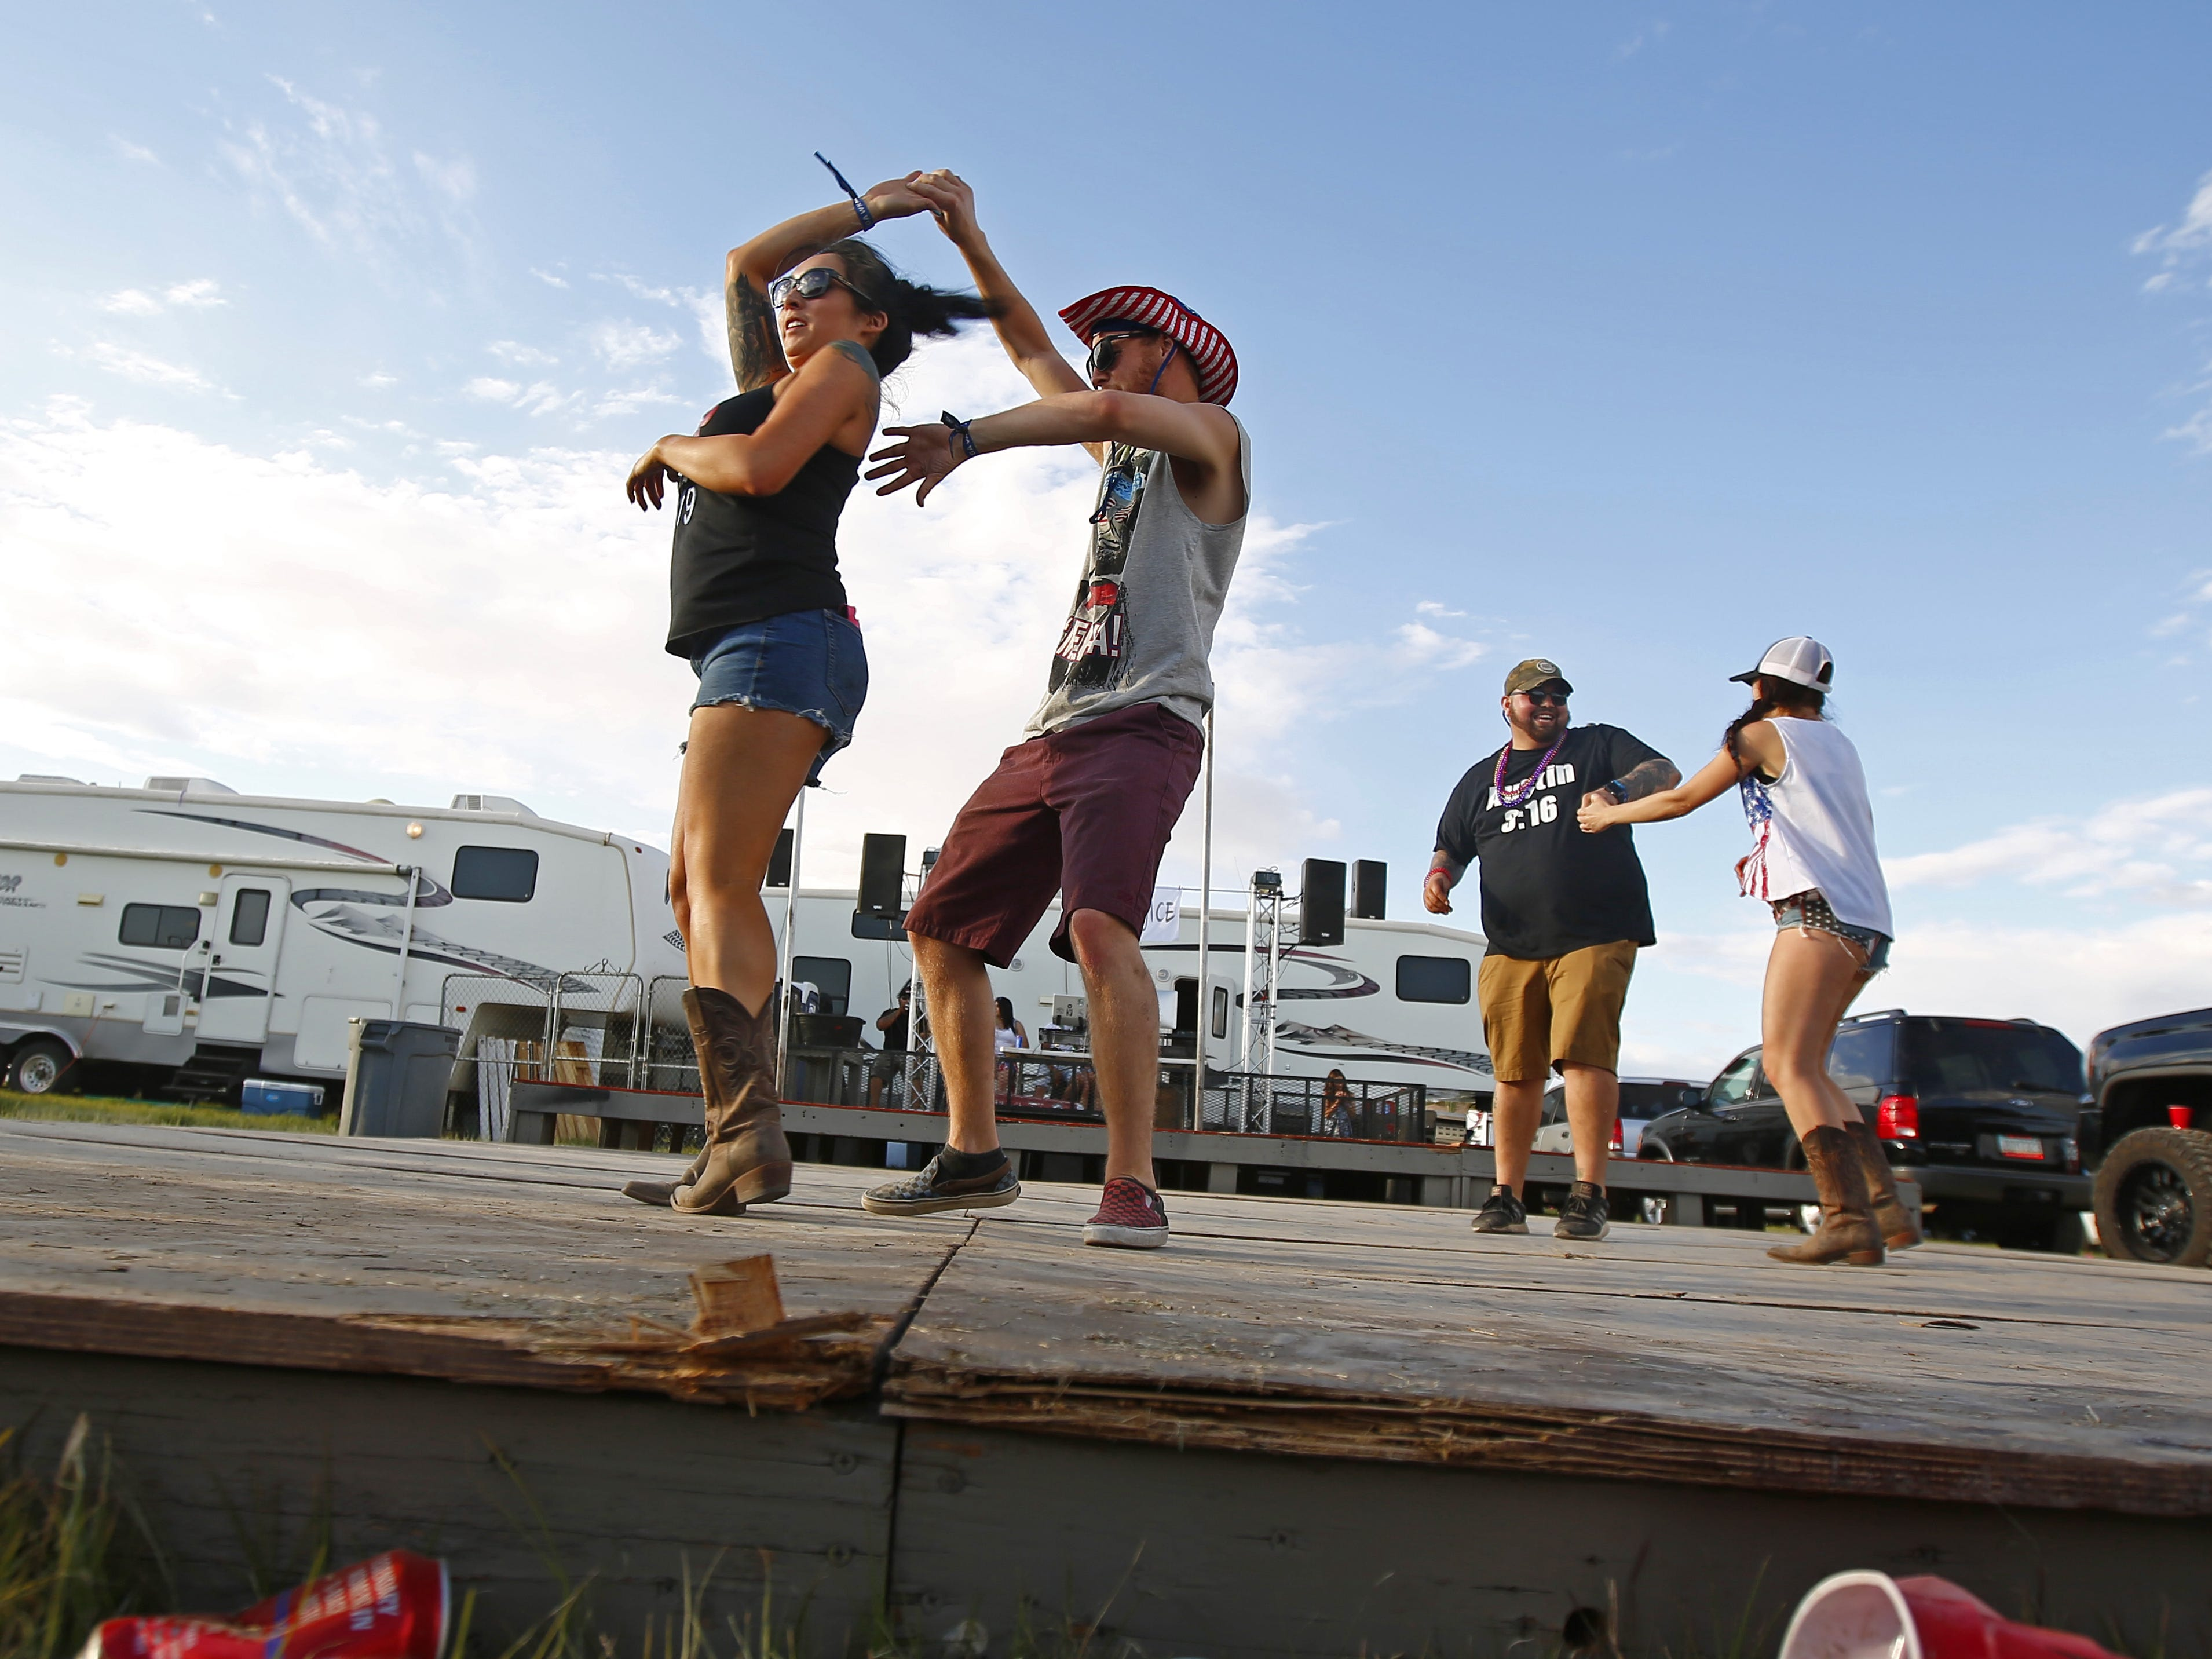 Casey Kaczmarowki spins Kristi Lovato as they dance on a stage at the campsite Coyote during Country Thunder in Florence, Ariz. on Friday, April 12, 2019.